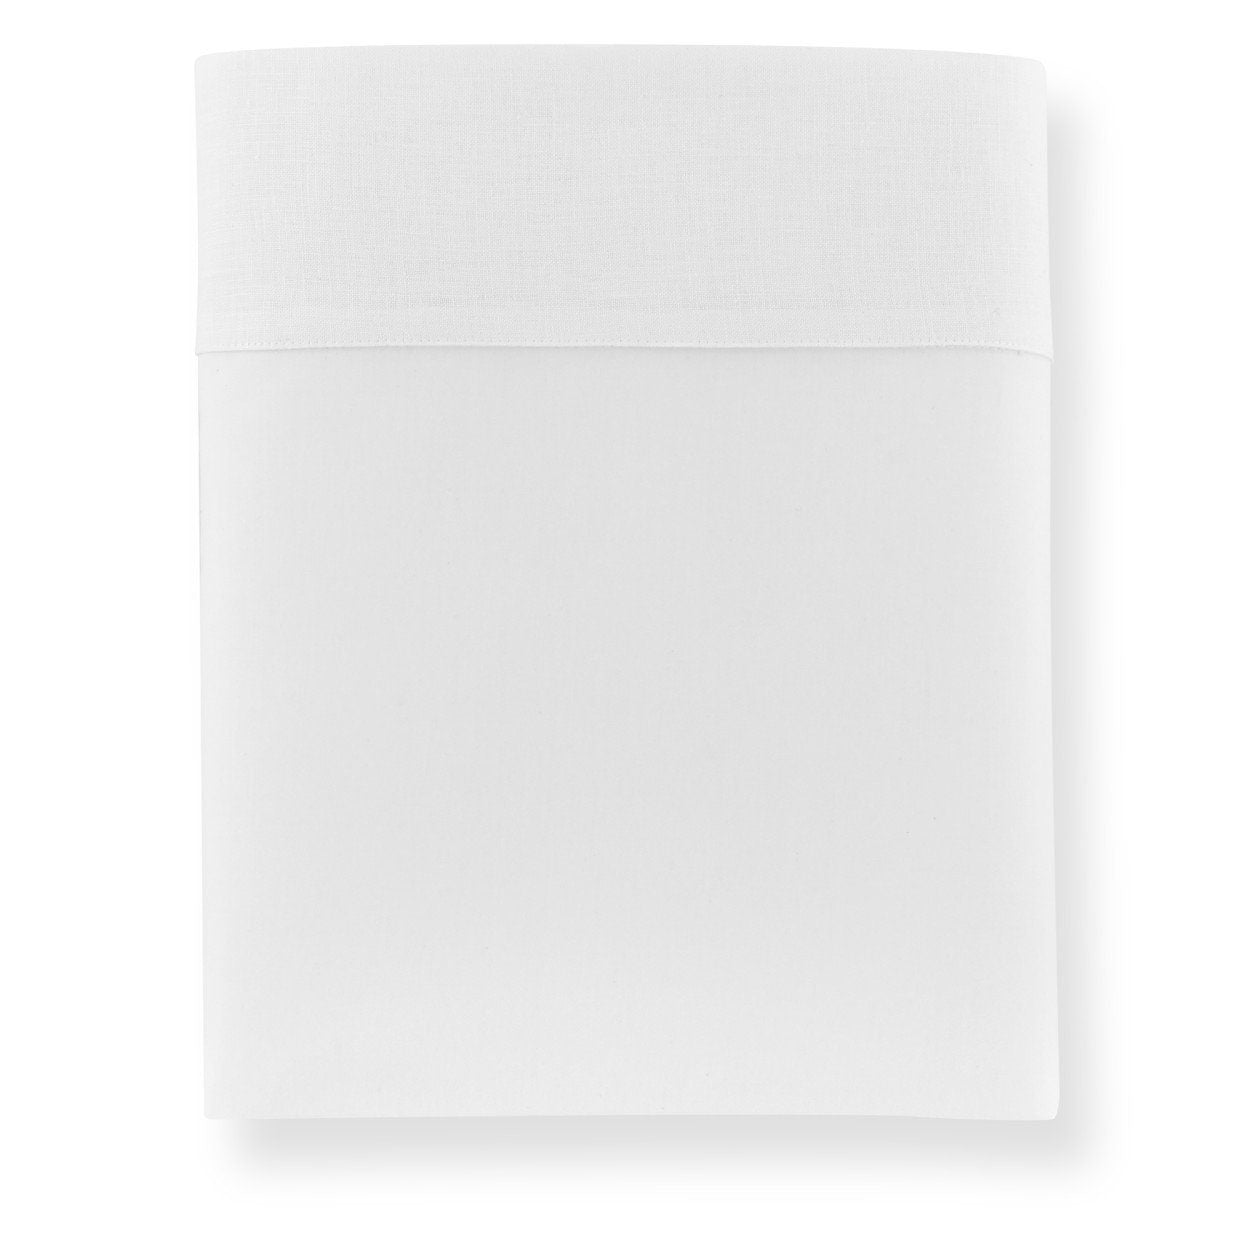 Mandalay Linen Cuff Percale Flat Sheet